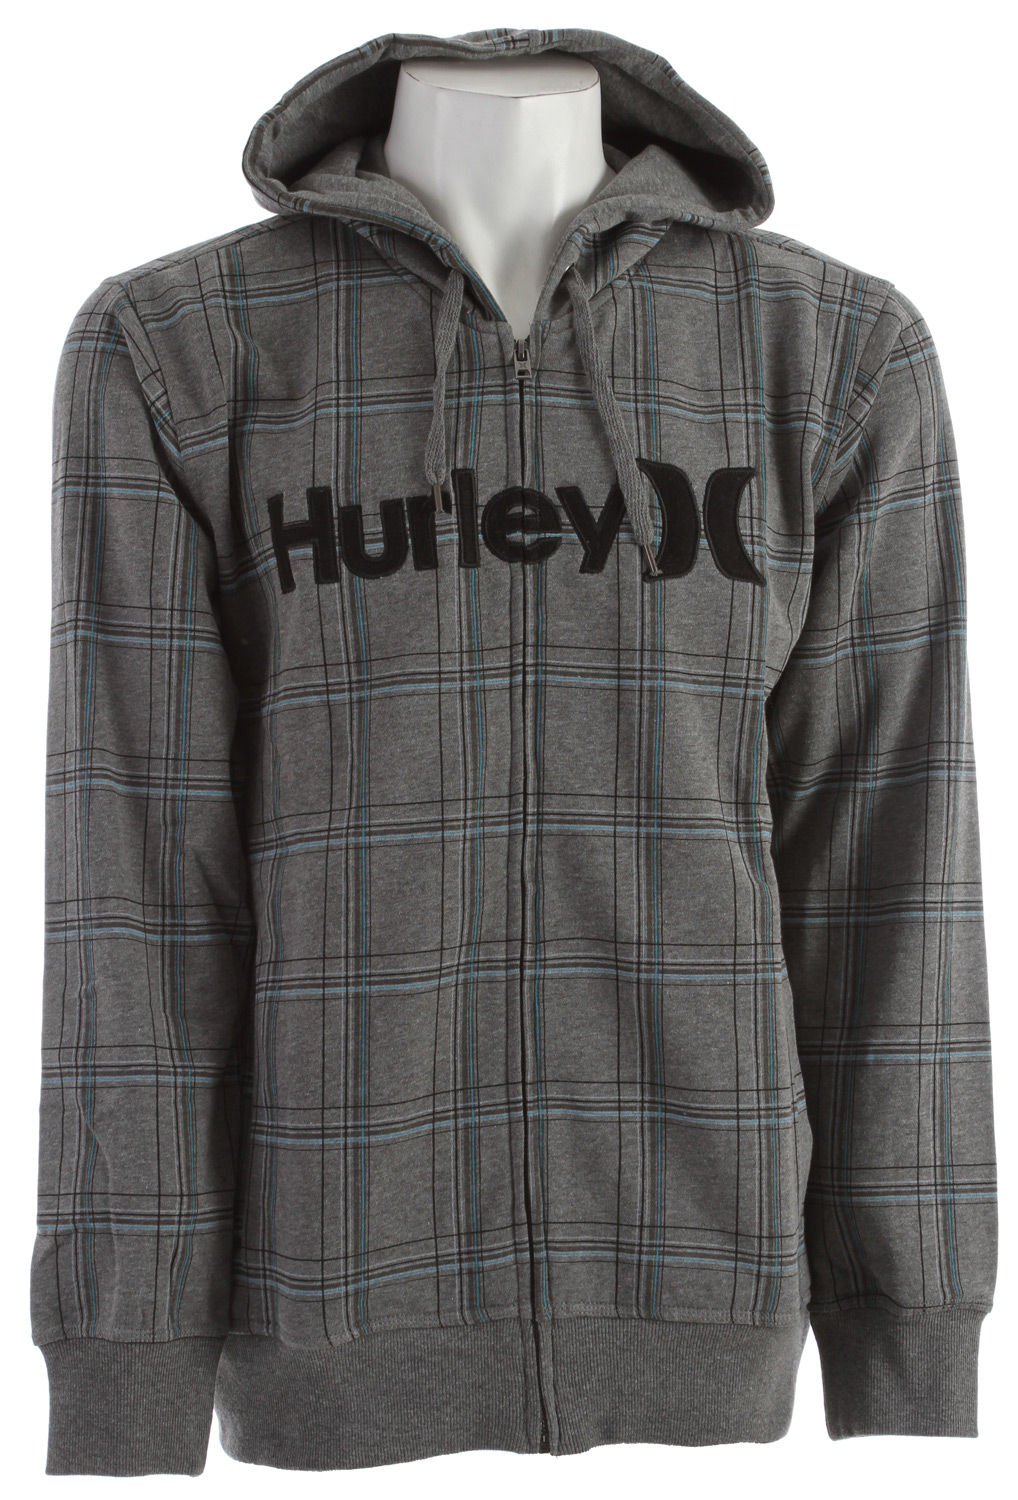 Surf Key Features of the Hurley Gravitation Hoodie: Regular Fit 80% Cotton/20% Polyester 300g Fleece. Zip fleece with plastic molded zipper Allover prints, Hurley applique at chest. - $39.16